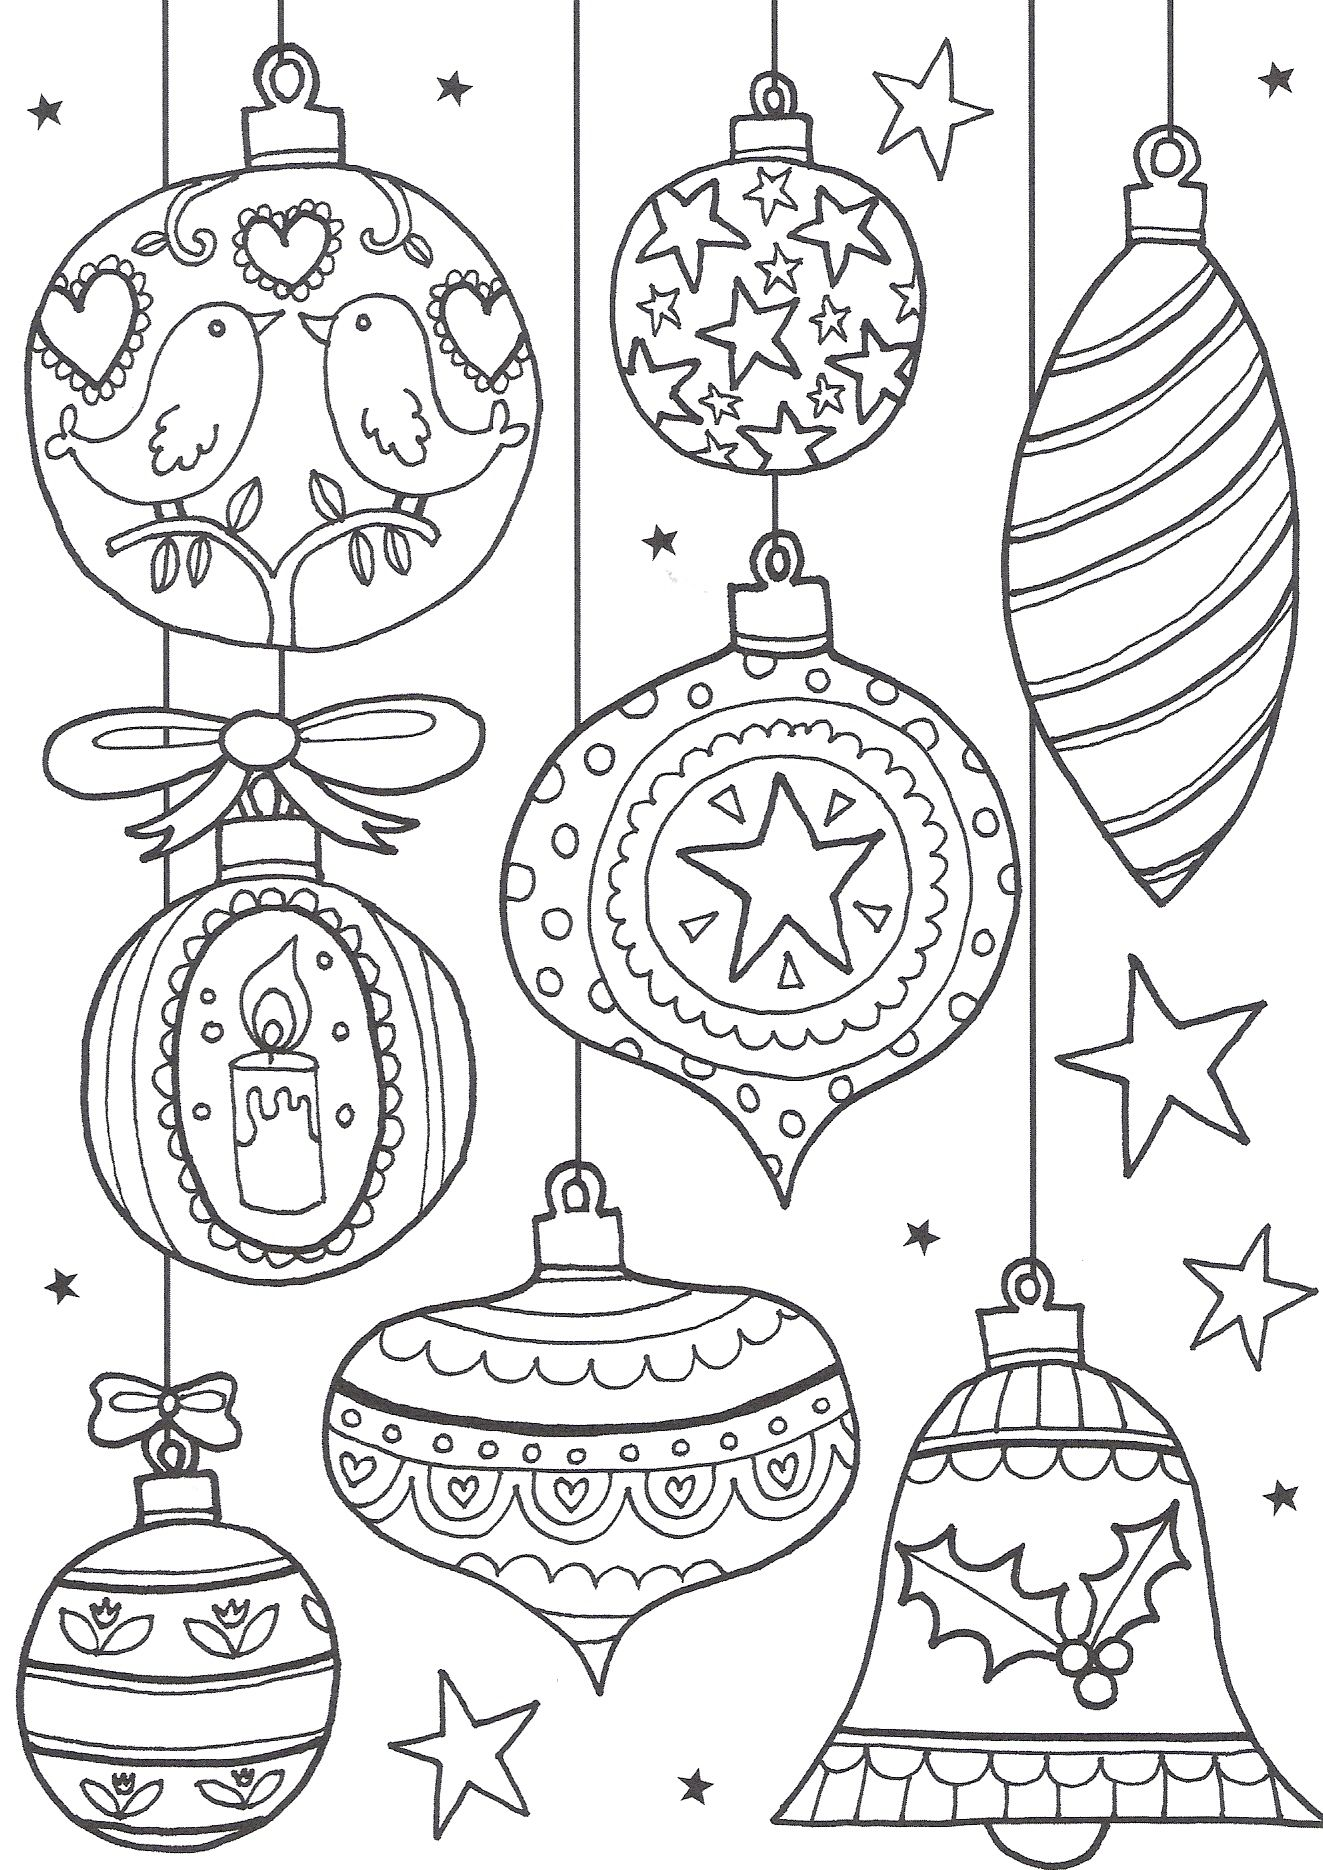 The Ultimate Roundup Of Free Christmas Colouring Pages For Adults And Teens Over 50 Free Festiv Free Christmas Coloring Pages Christmas Colors Coloring Pages